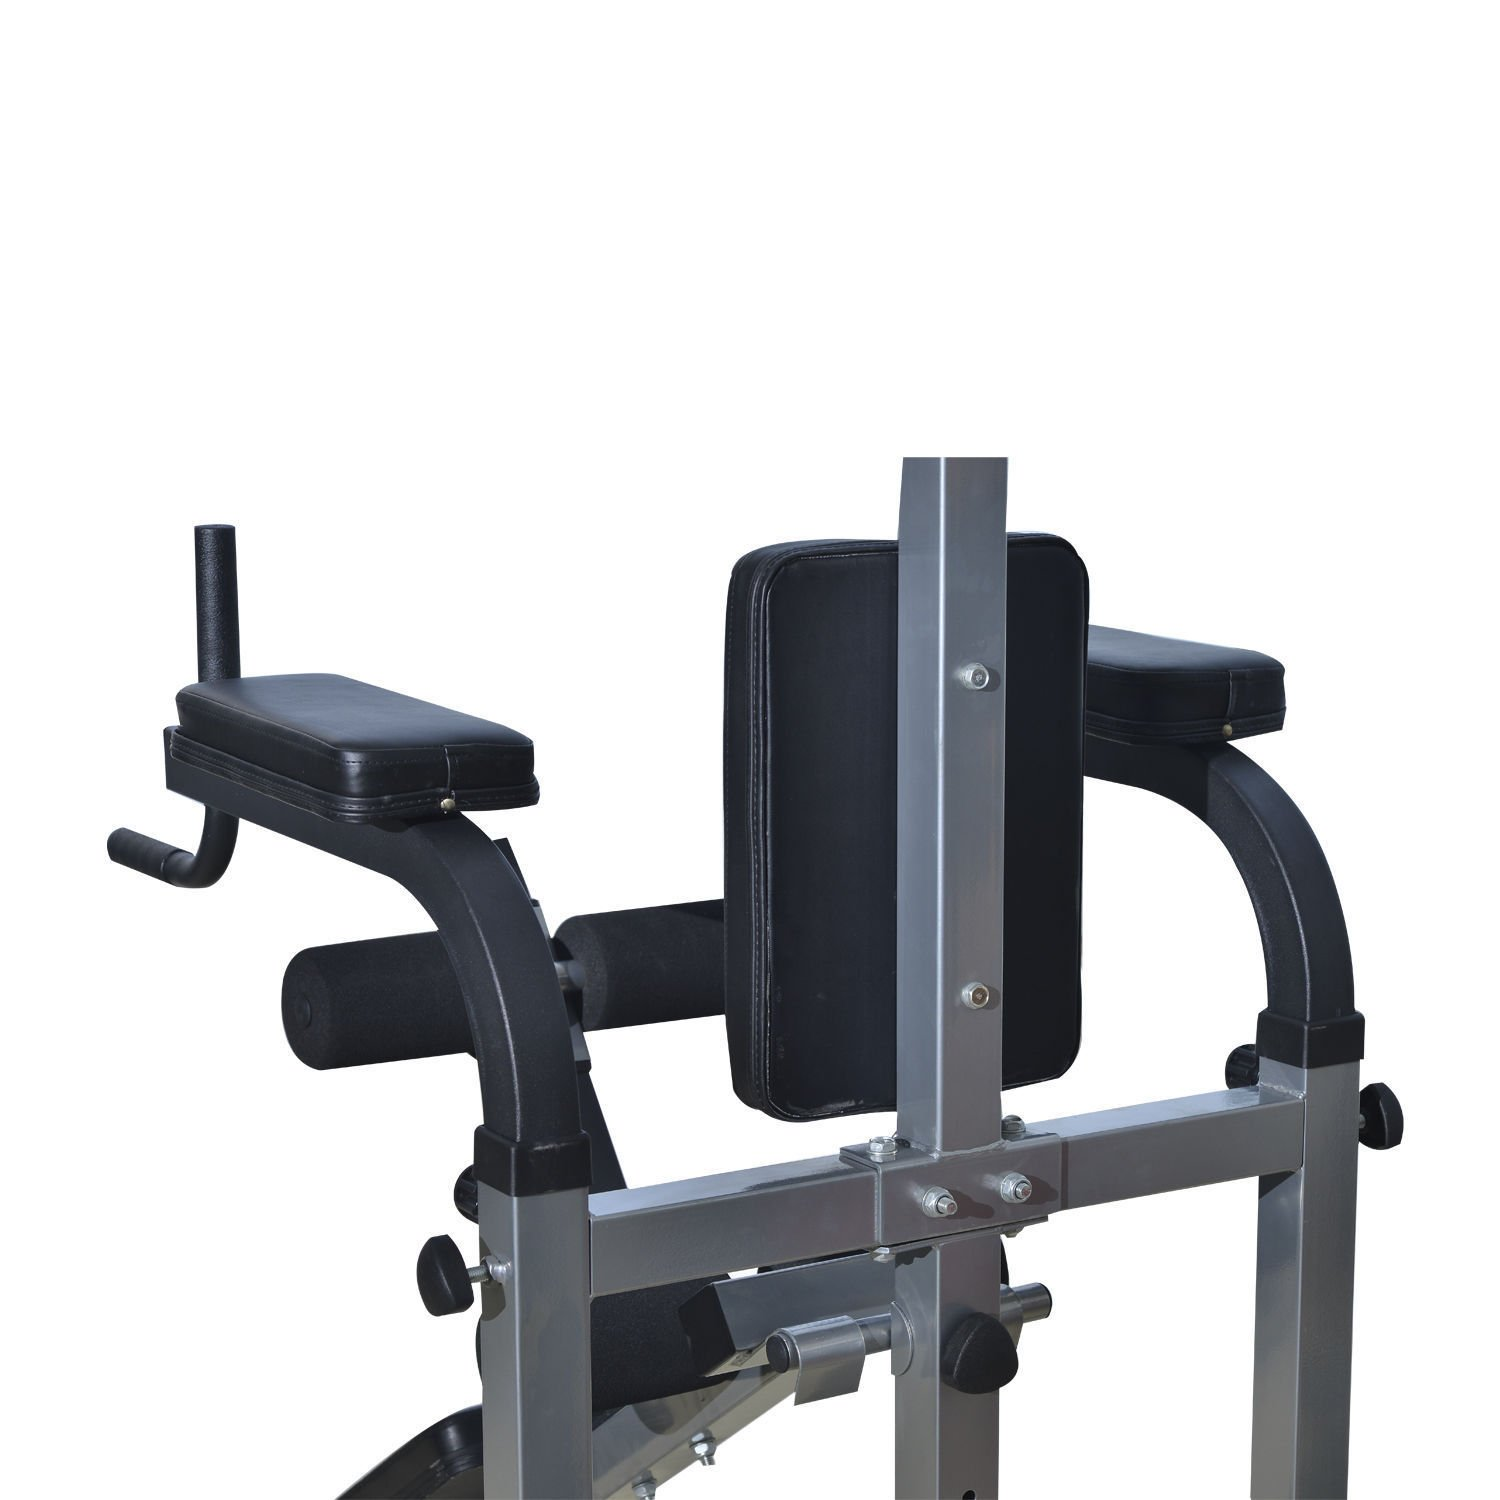 Home Gym Workout Strength Fitness Training Power Tower Dip Station Weight Bench by Happybeamy (Image #5)